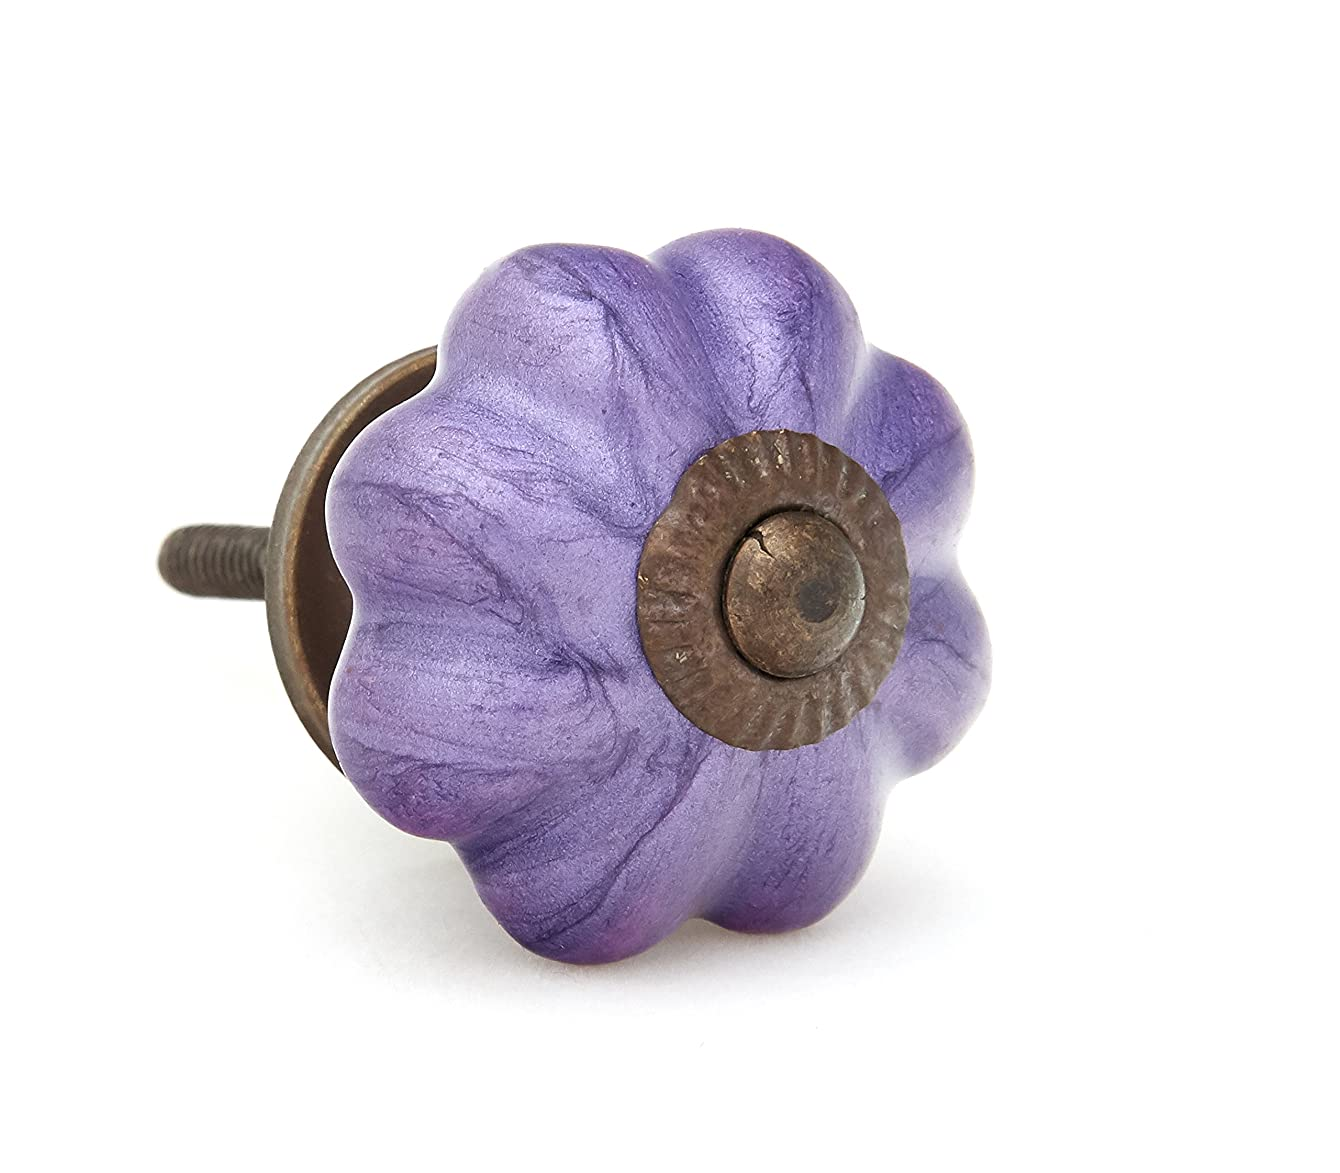 Neon Purple Pumpkin Shaped Ceramic Drawer Pull, Cabinet Knob